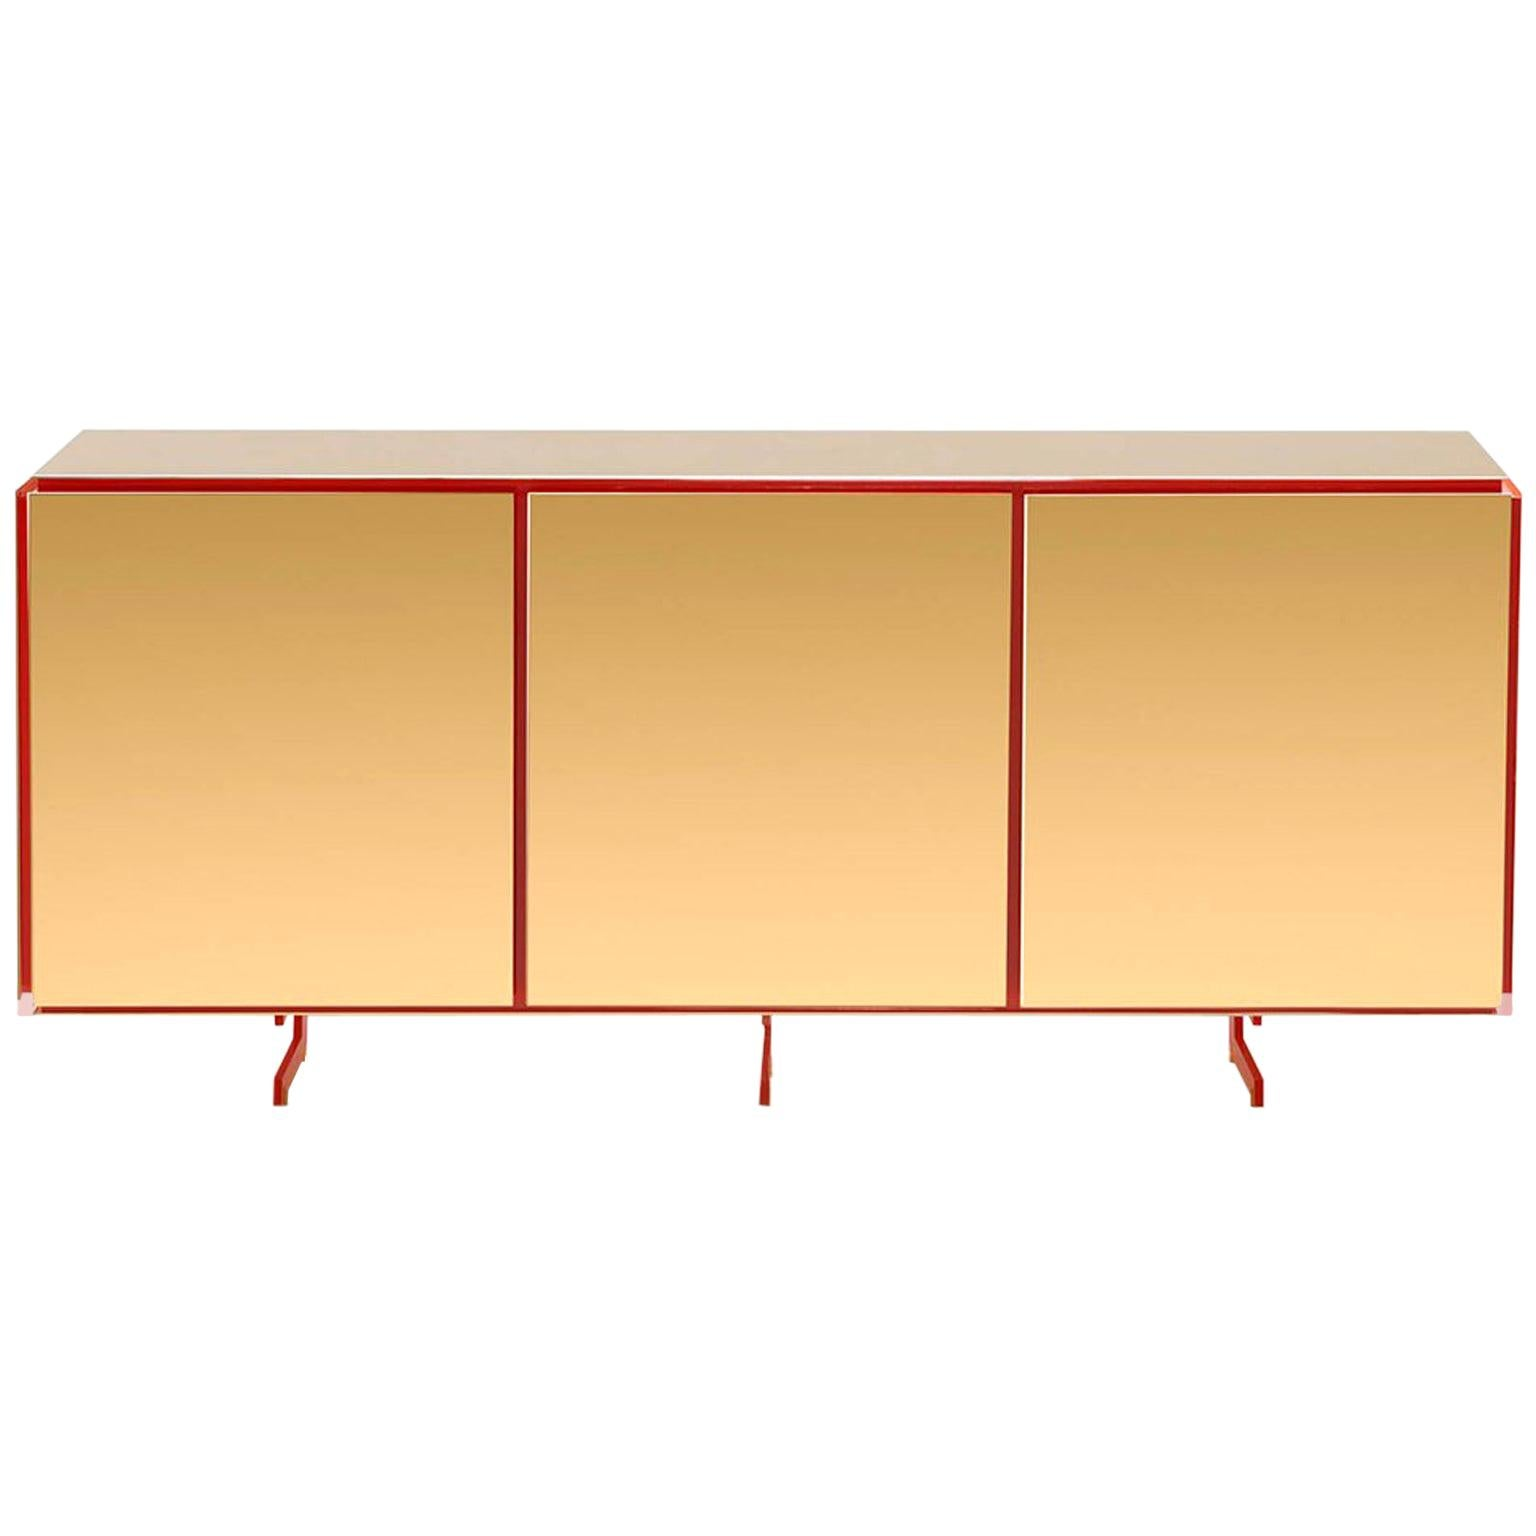 Gold Contemporary Three-Door Sideboard, 24-Karat Polished Gold-Plated